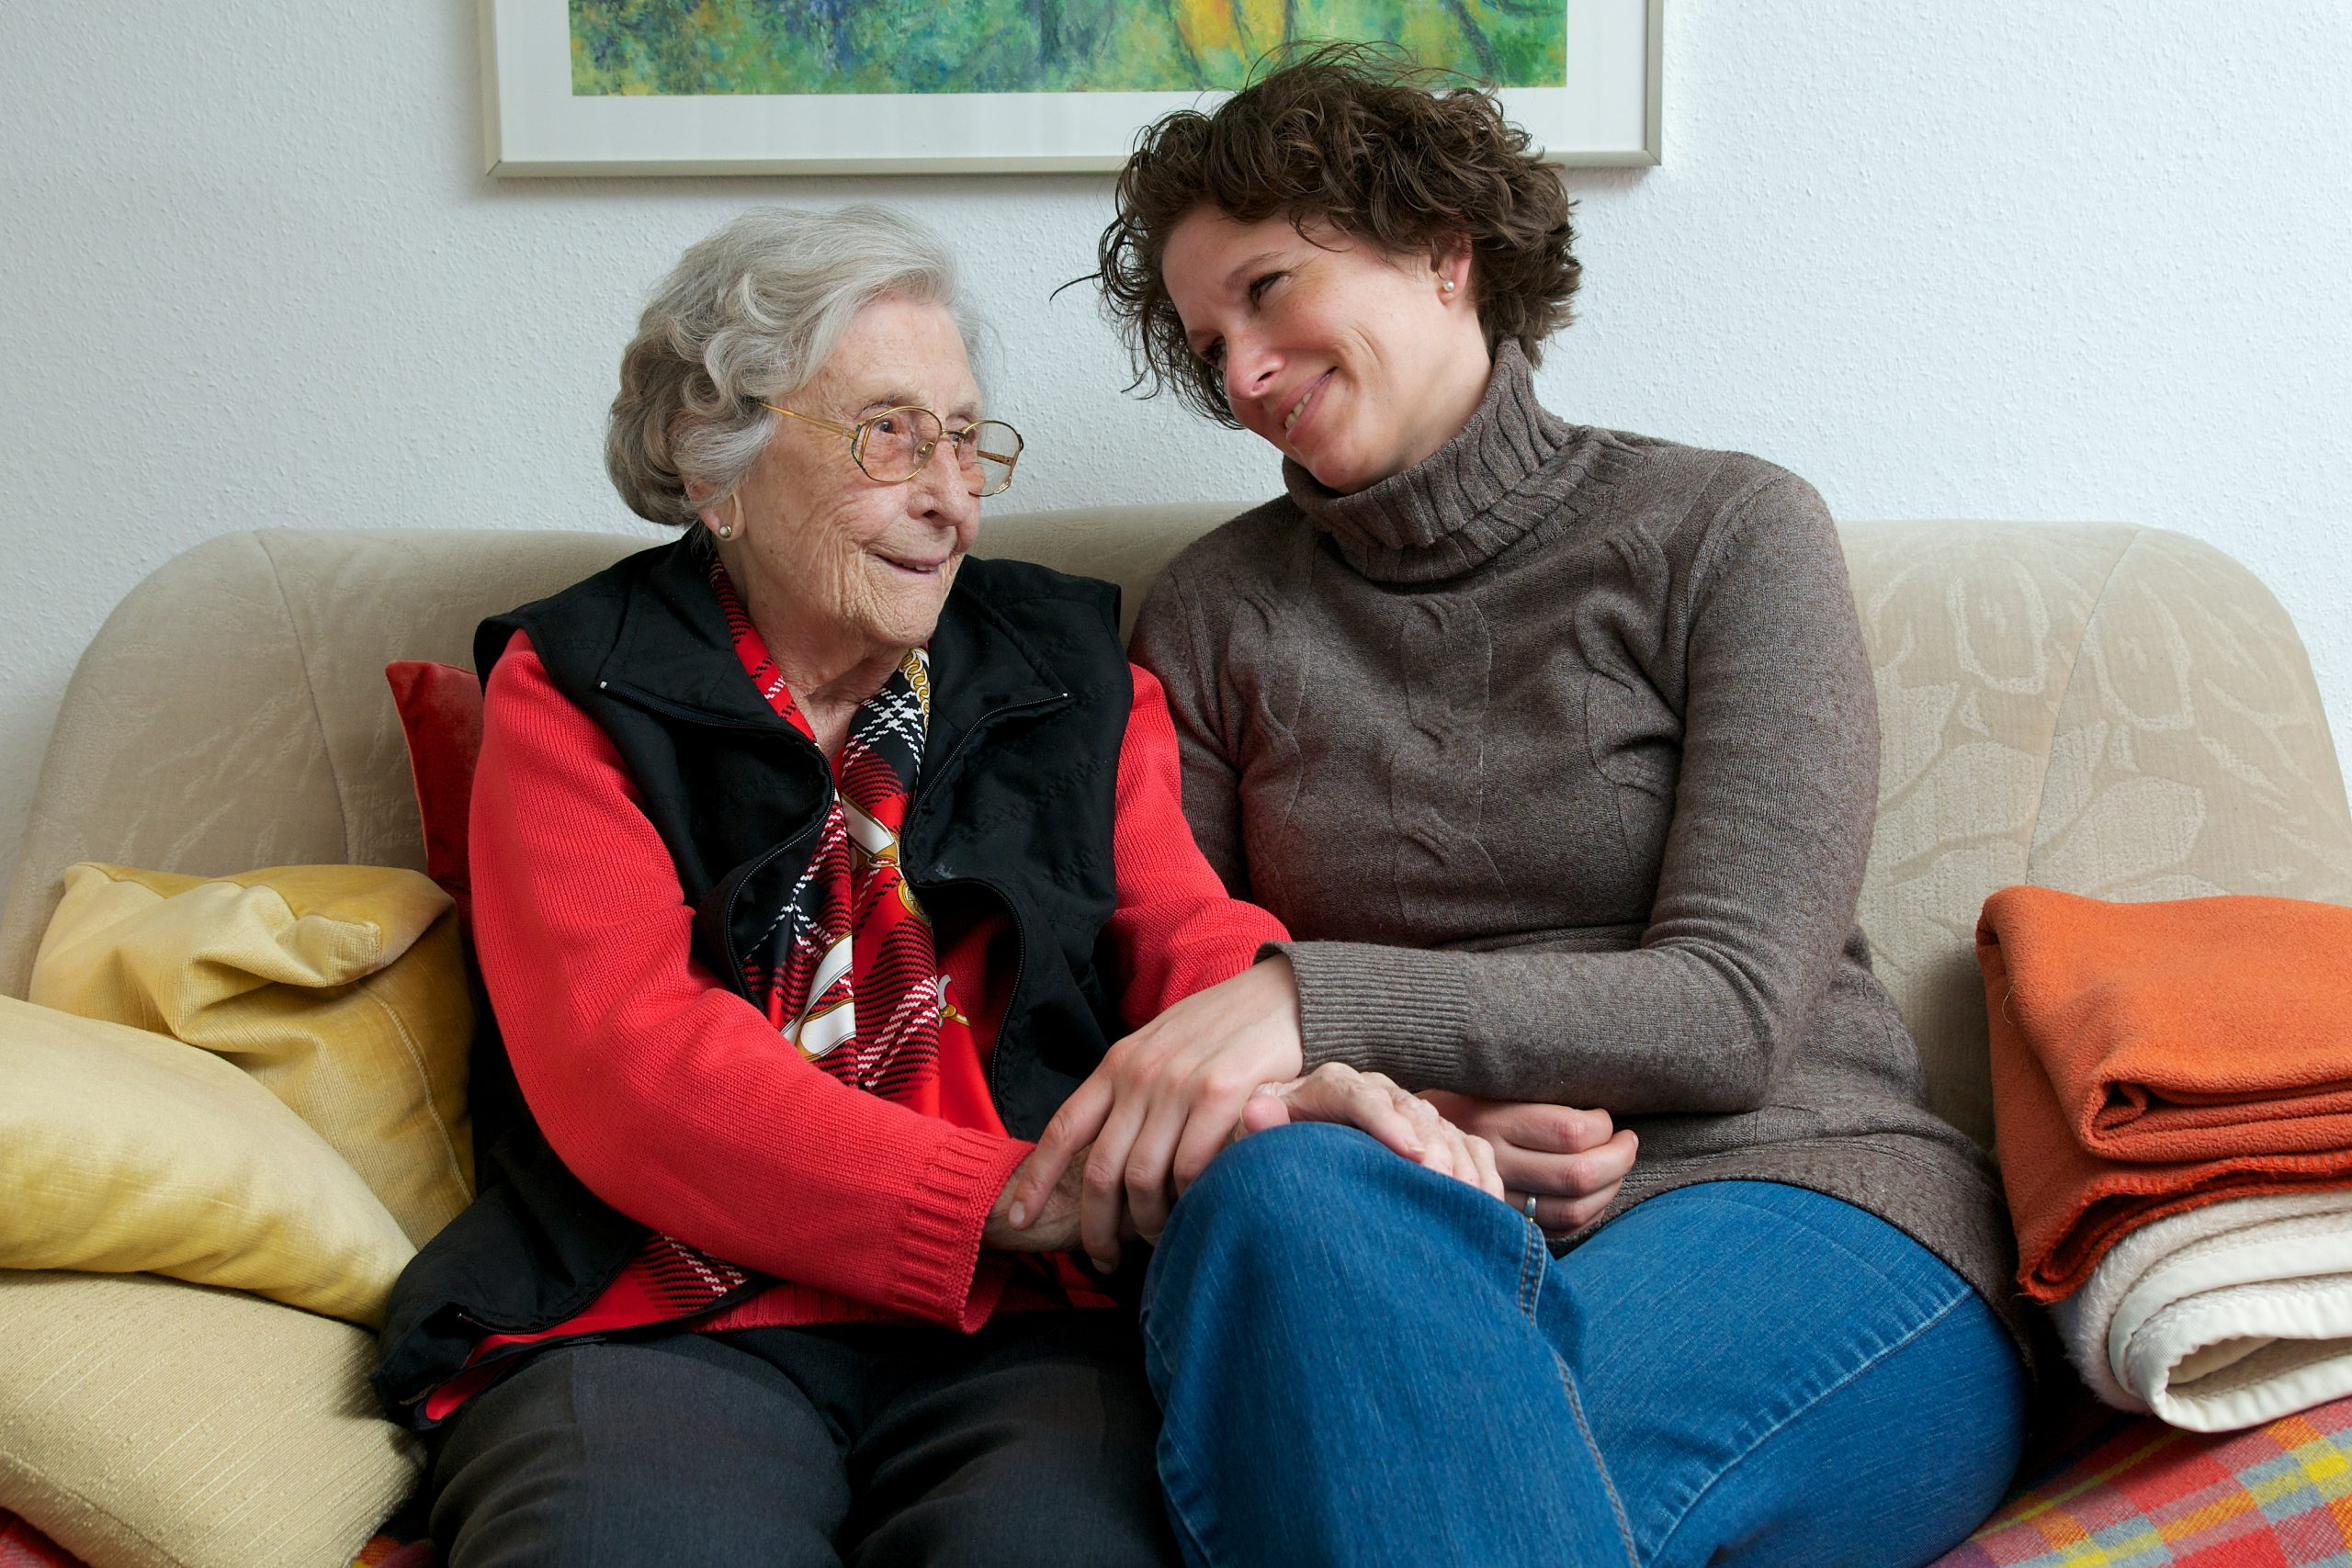 senior care plus caregiver with elderly cliient holding hands on sofa happy